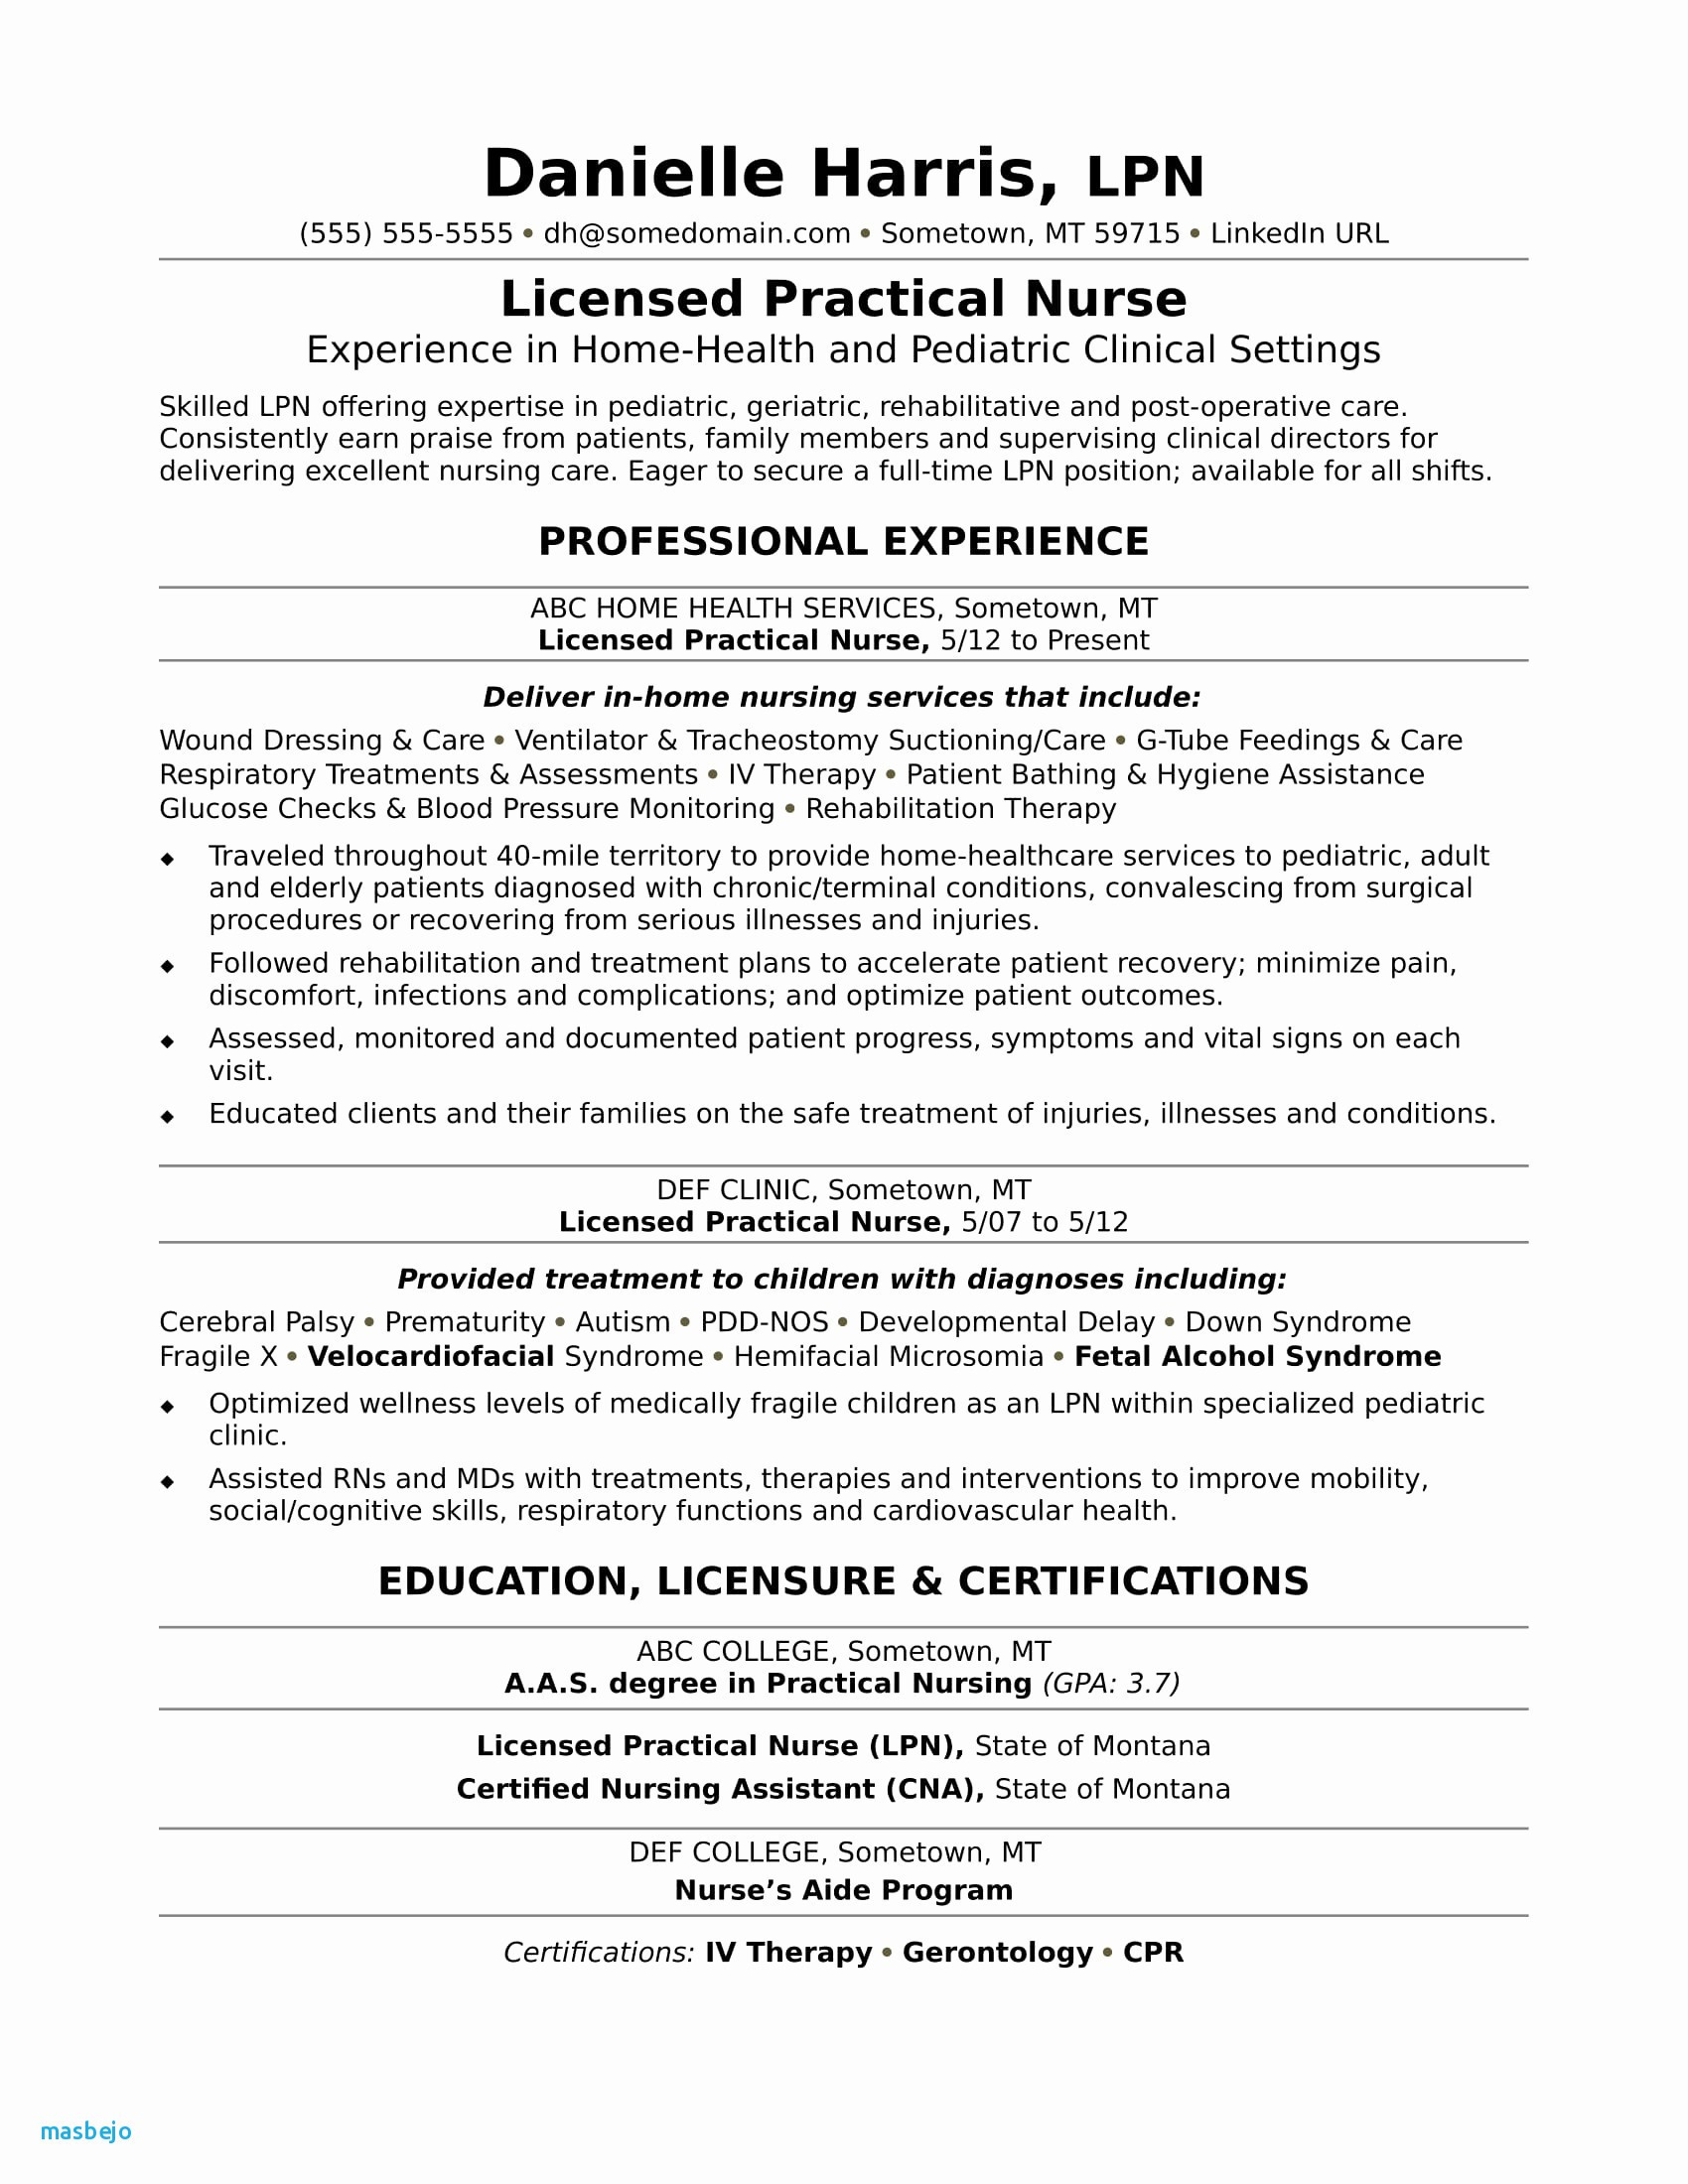 Nurse Practitioner Resume Sample - Sample Resume for A New Registered Nurse Resume Resume Examples